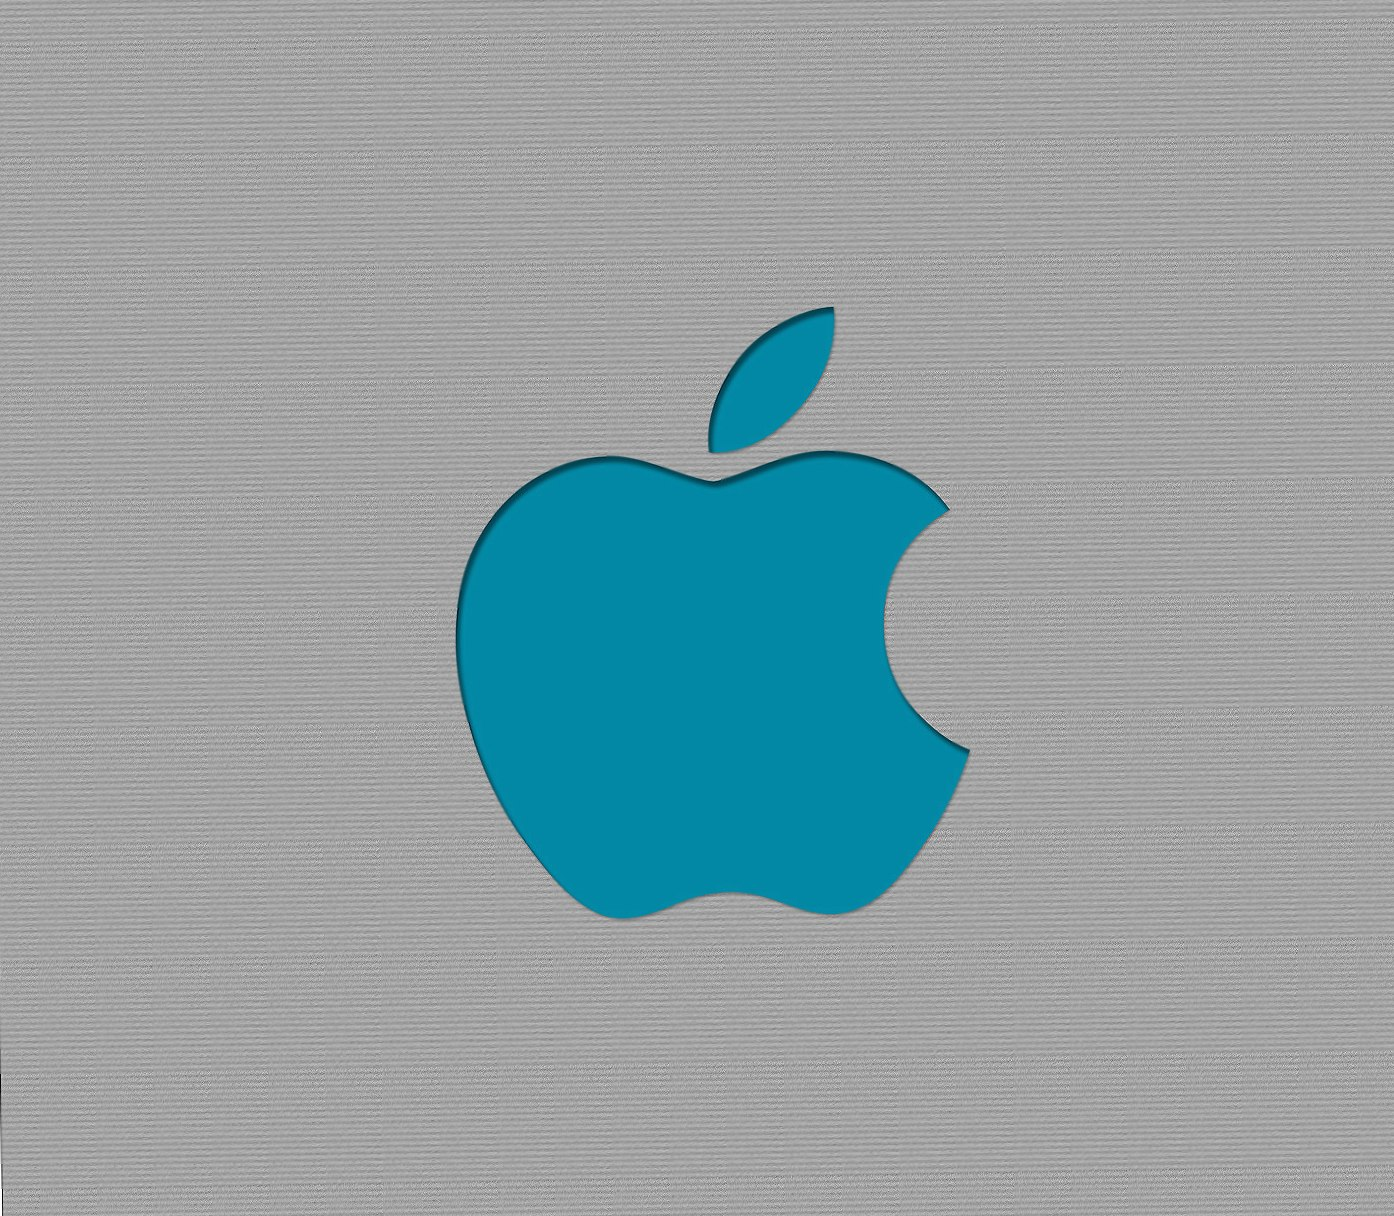 blue apple logo wallpapers HD quality